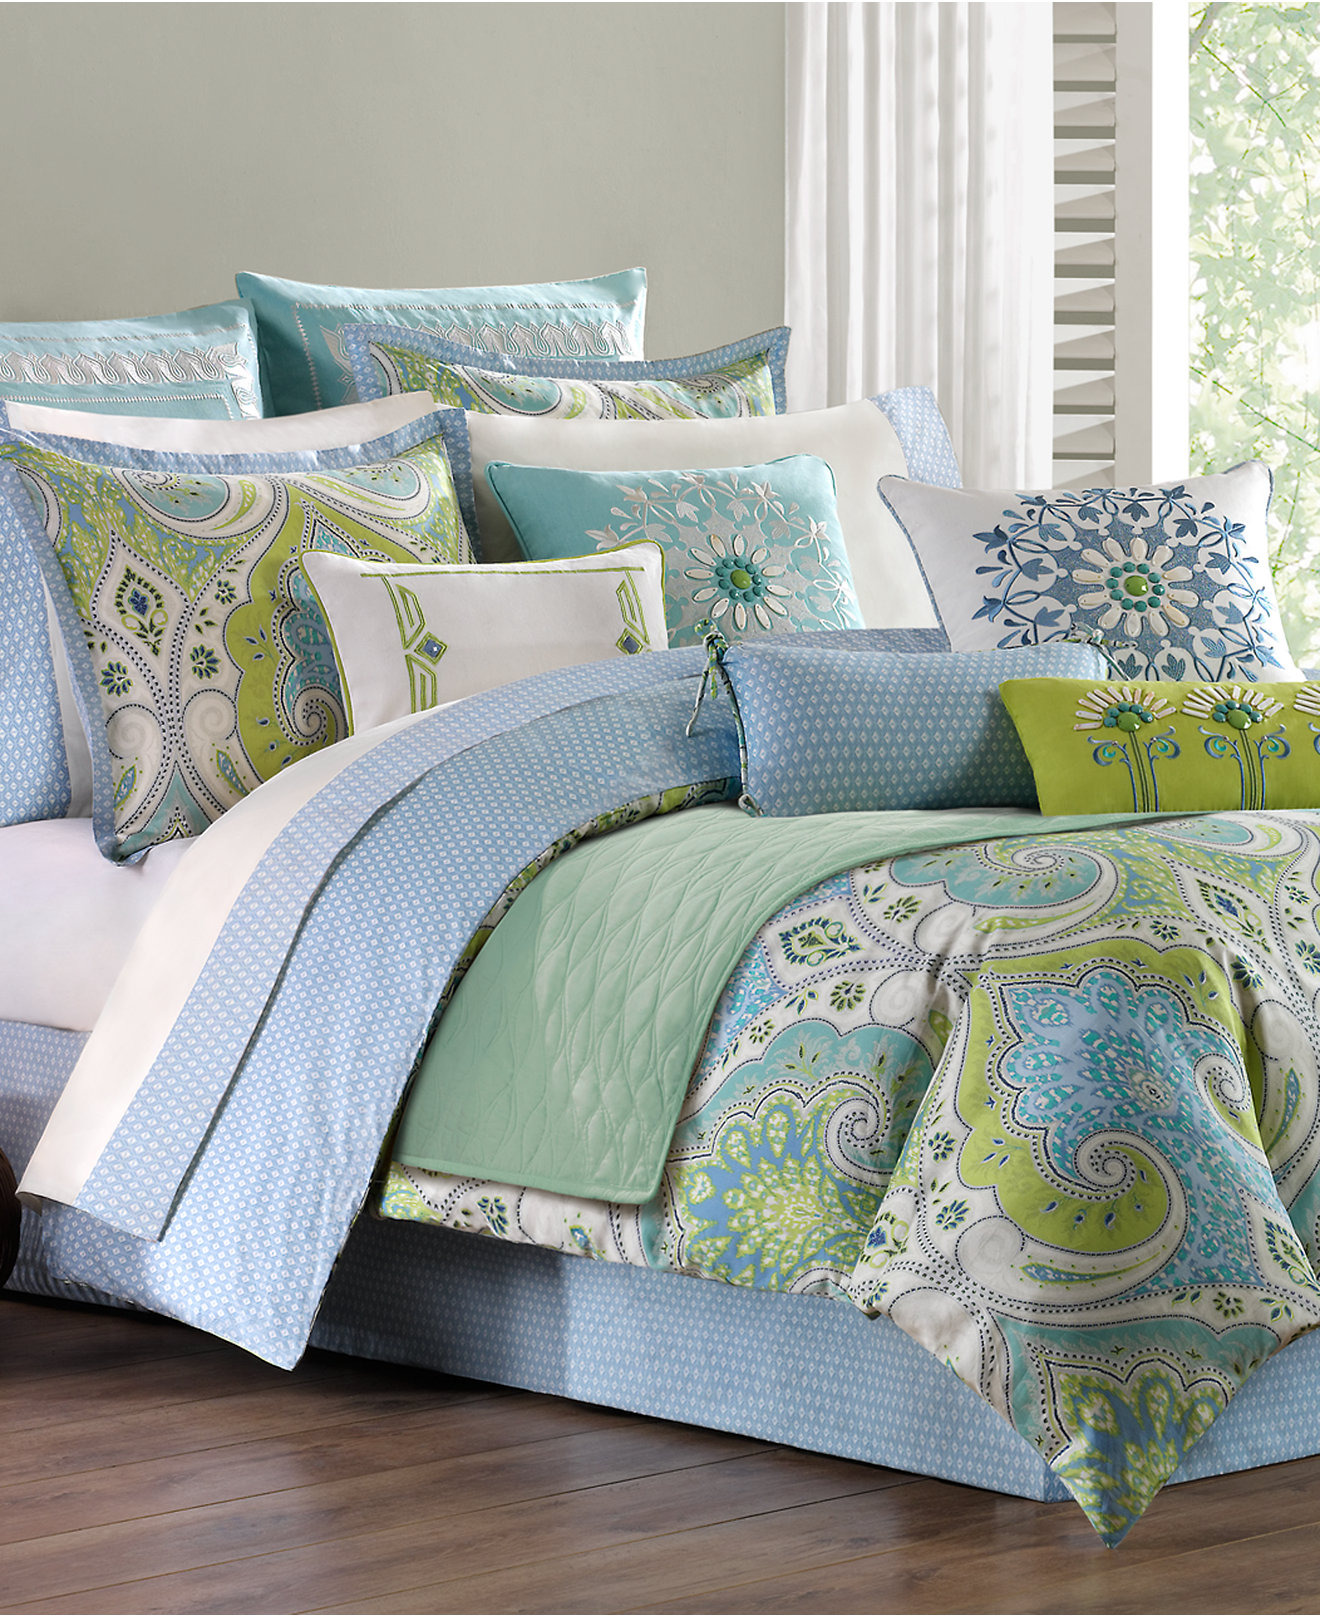 Echo Sardinia 3 pc Reversible Bedding Collection  300 Thread Count 100   Cotton   Bedding Collections   Bed   Bath   Macy s. Echo Sardinia 3 pc Reversible Bedding Collection  300 Thread Count